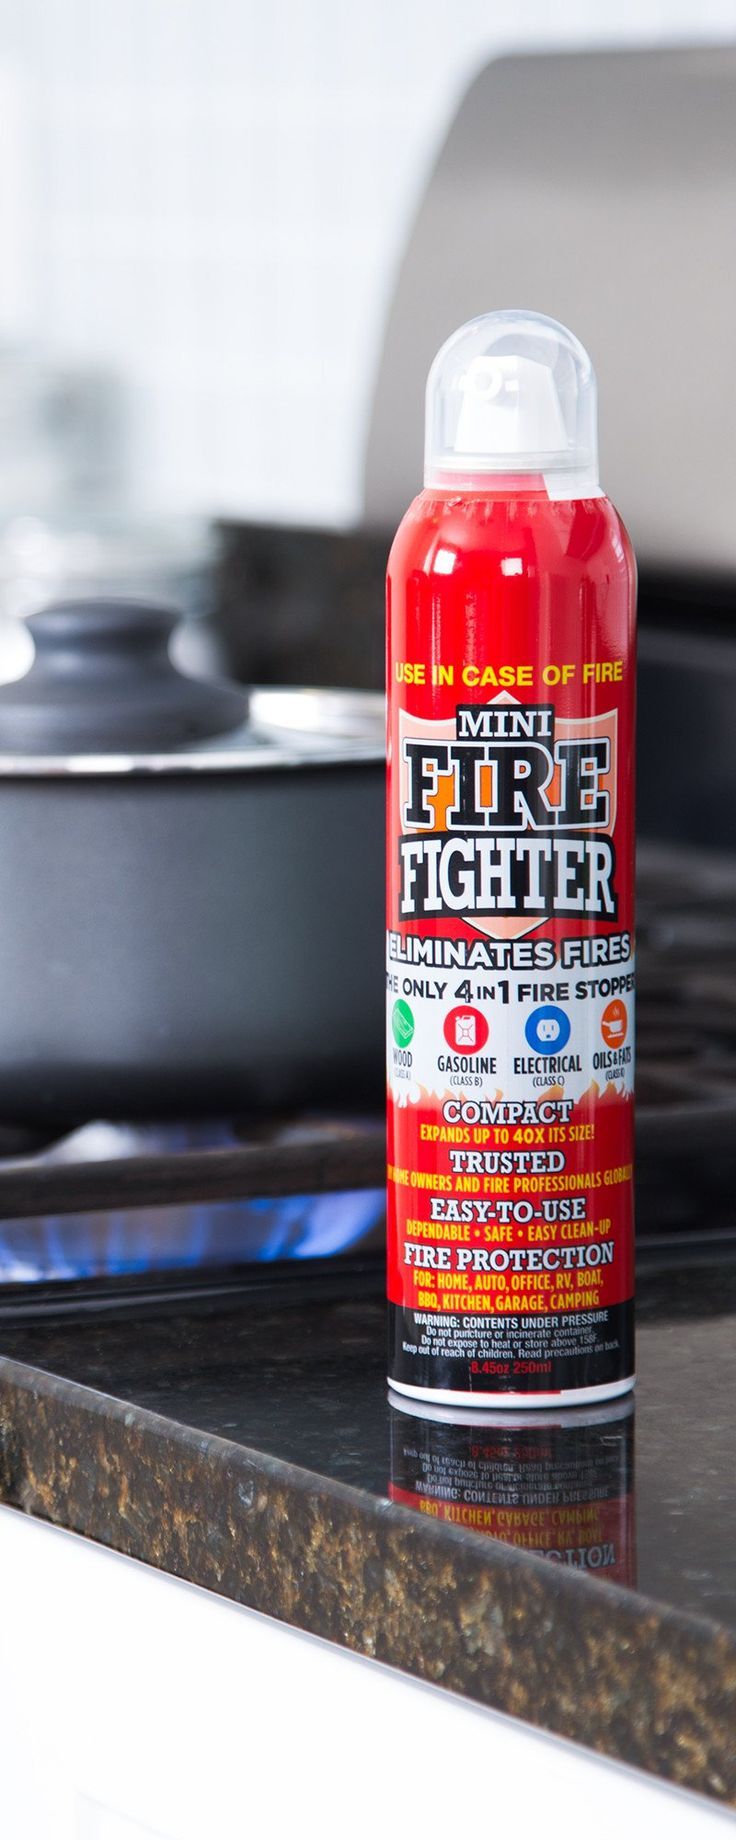 This compact, reusable extinguisher, discovered by The Grommet, is as simple as a spray can. The foam it releases is biodegradeable and easy to clean, too.